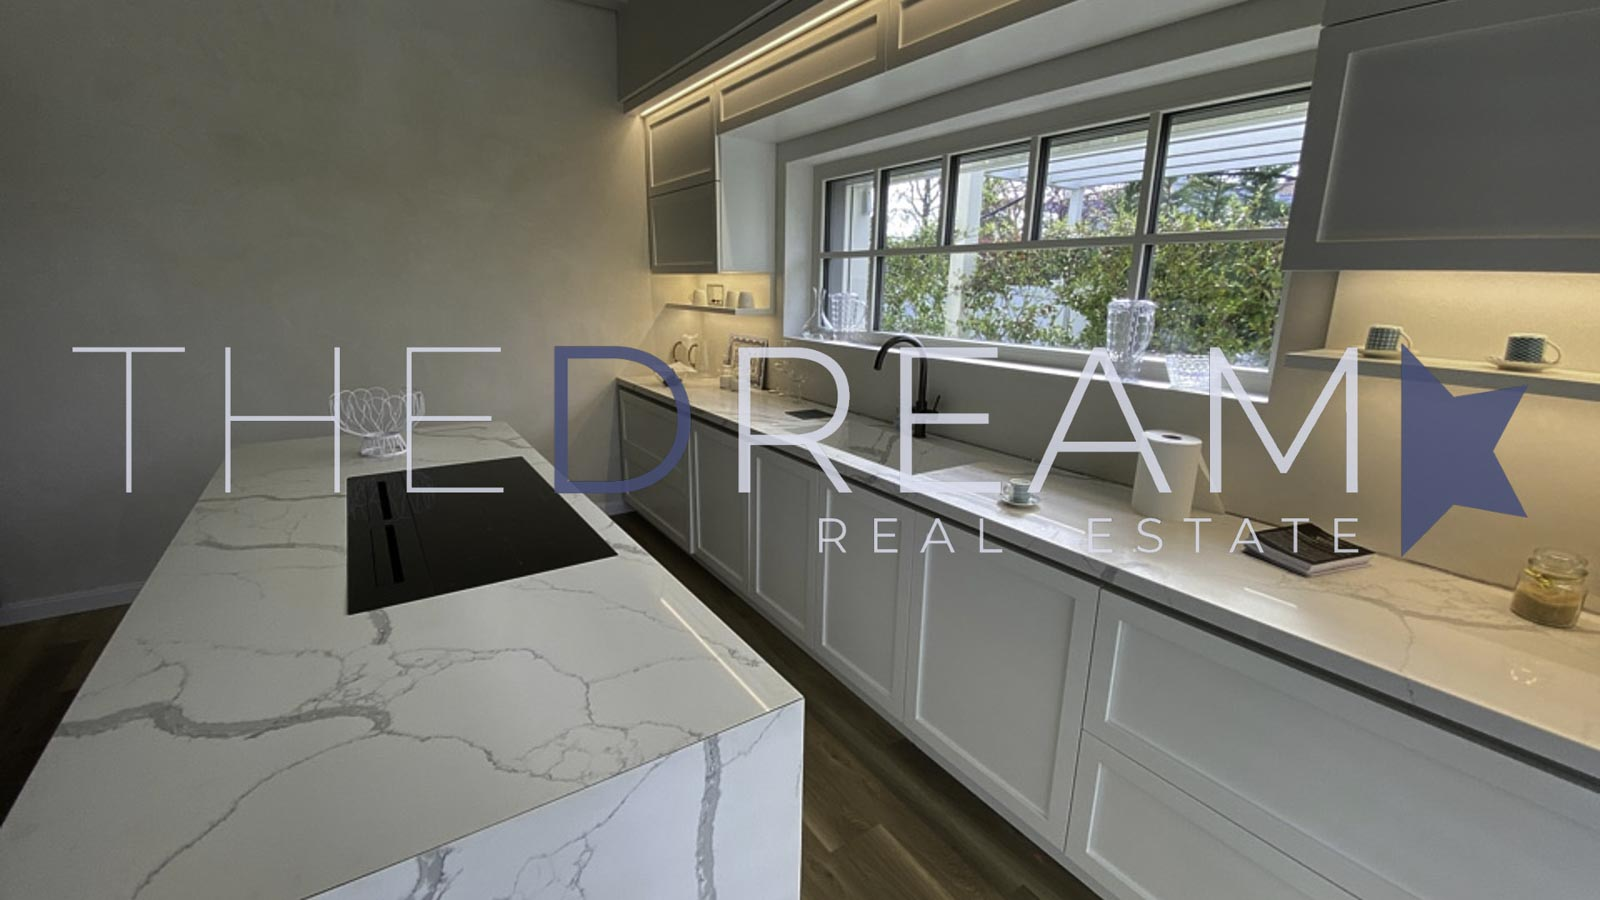 Equipped with all comforts and high quality finishes, newly built villa for rent in Forte dei Marmi, located a few steps from the sea near Roma Imperiale. Property managed by The Dream RE, Real Estate Agency in Forte dei Marmi